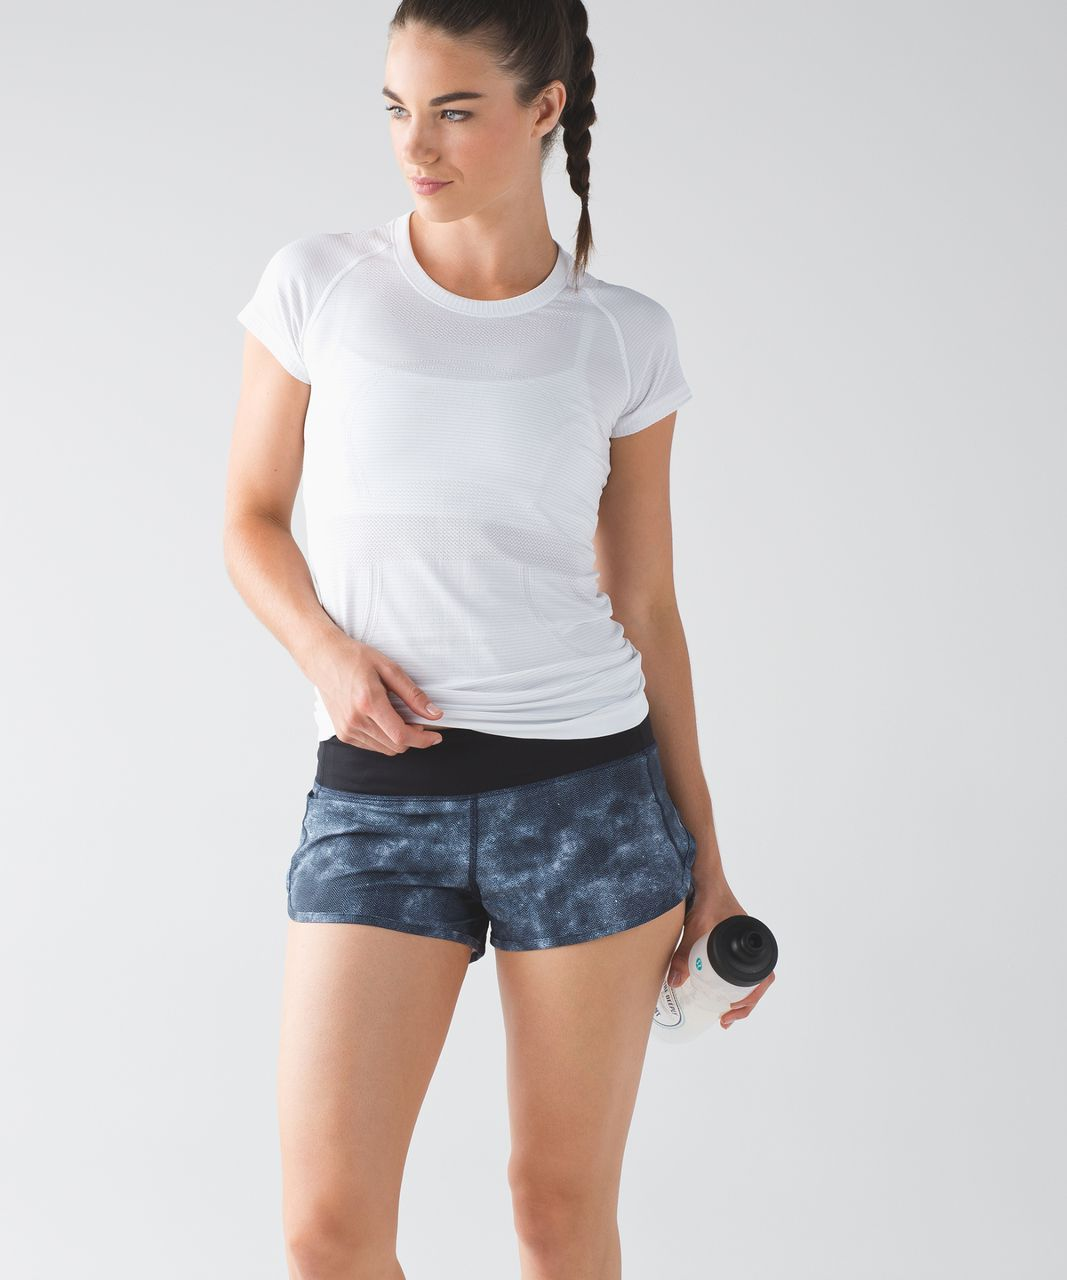 Lululemon Speed Short - Mini Diffusion White Black / Black